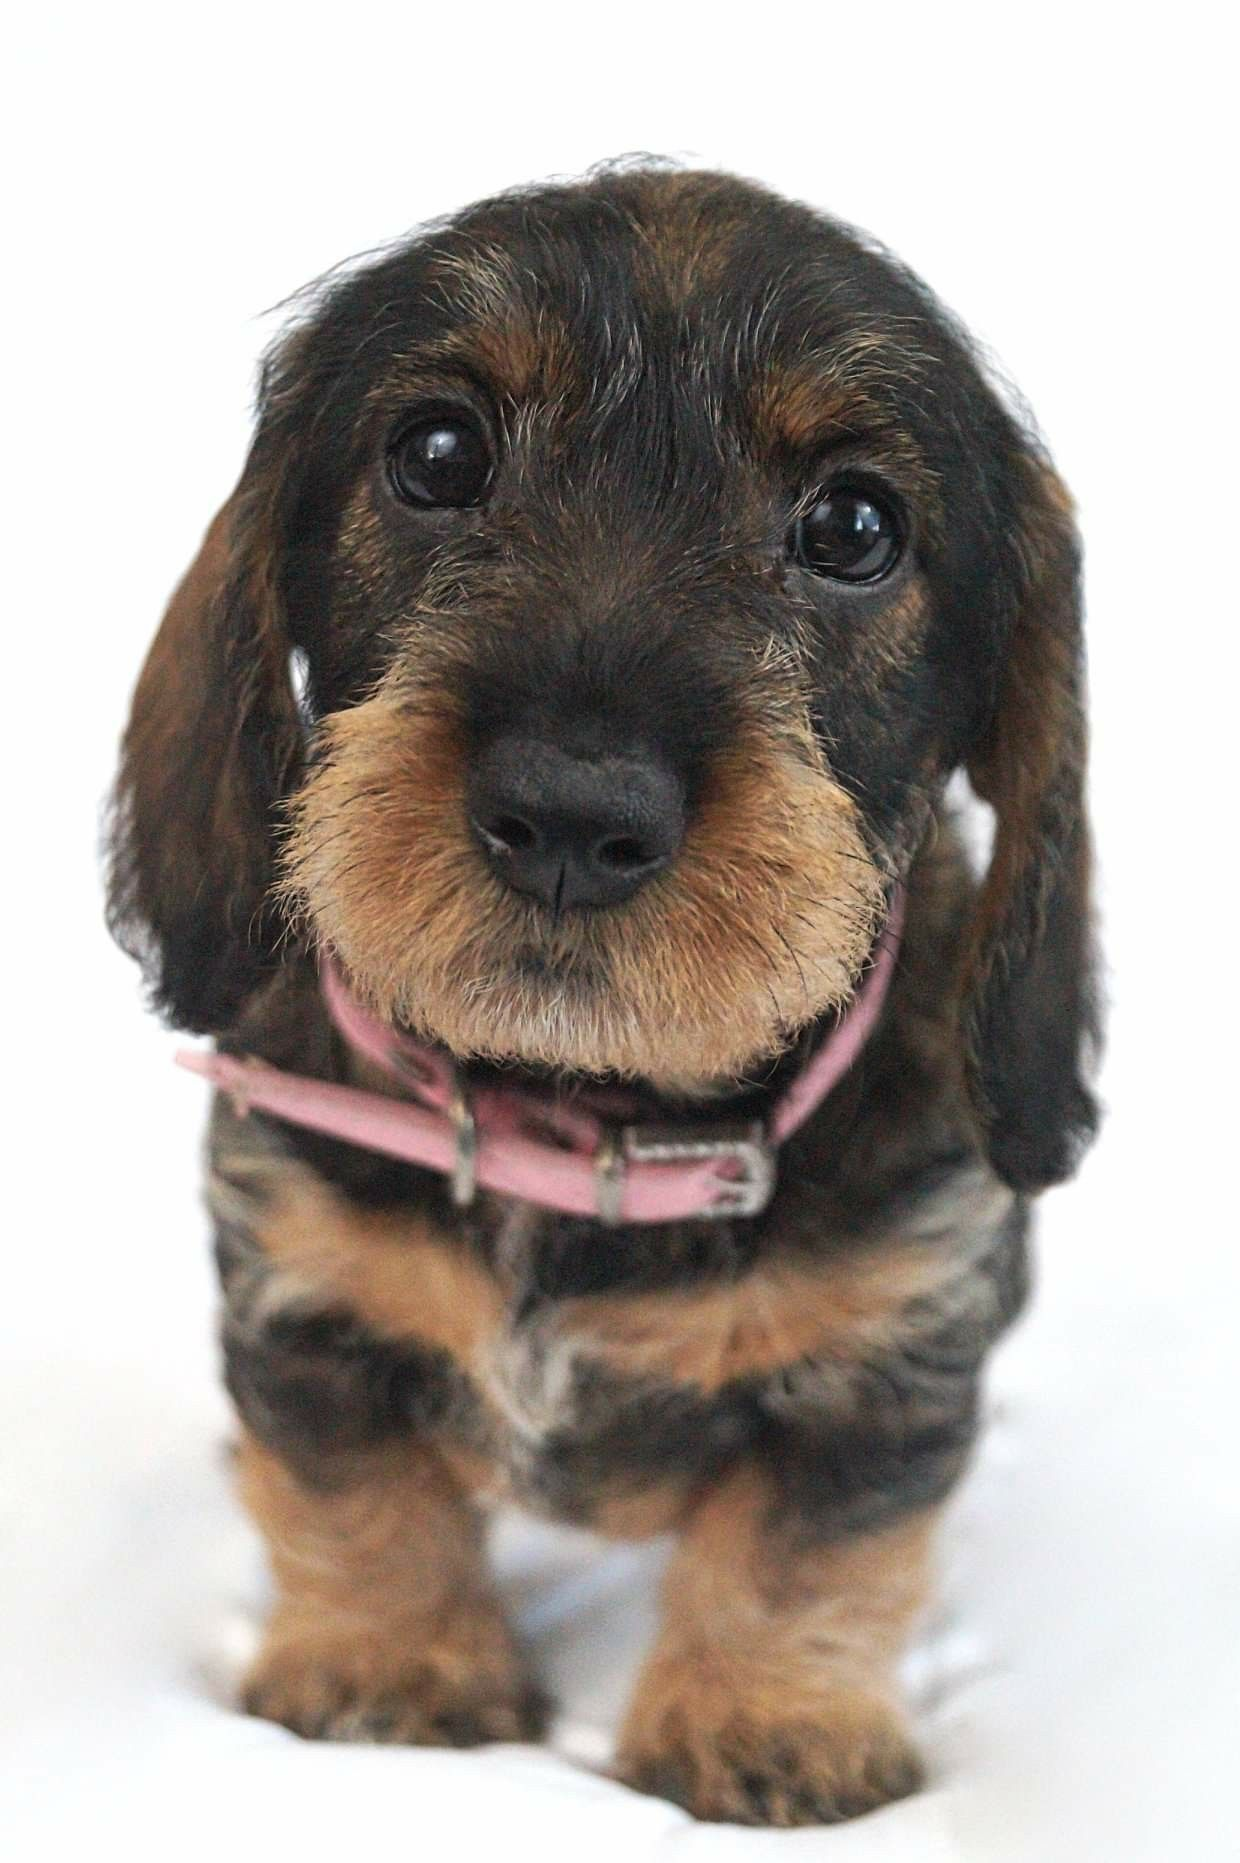 Pin By Mobuttons On Puppies In 2020 Wire Haired Dachshund Puppies Dachshund Dog